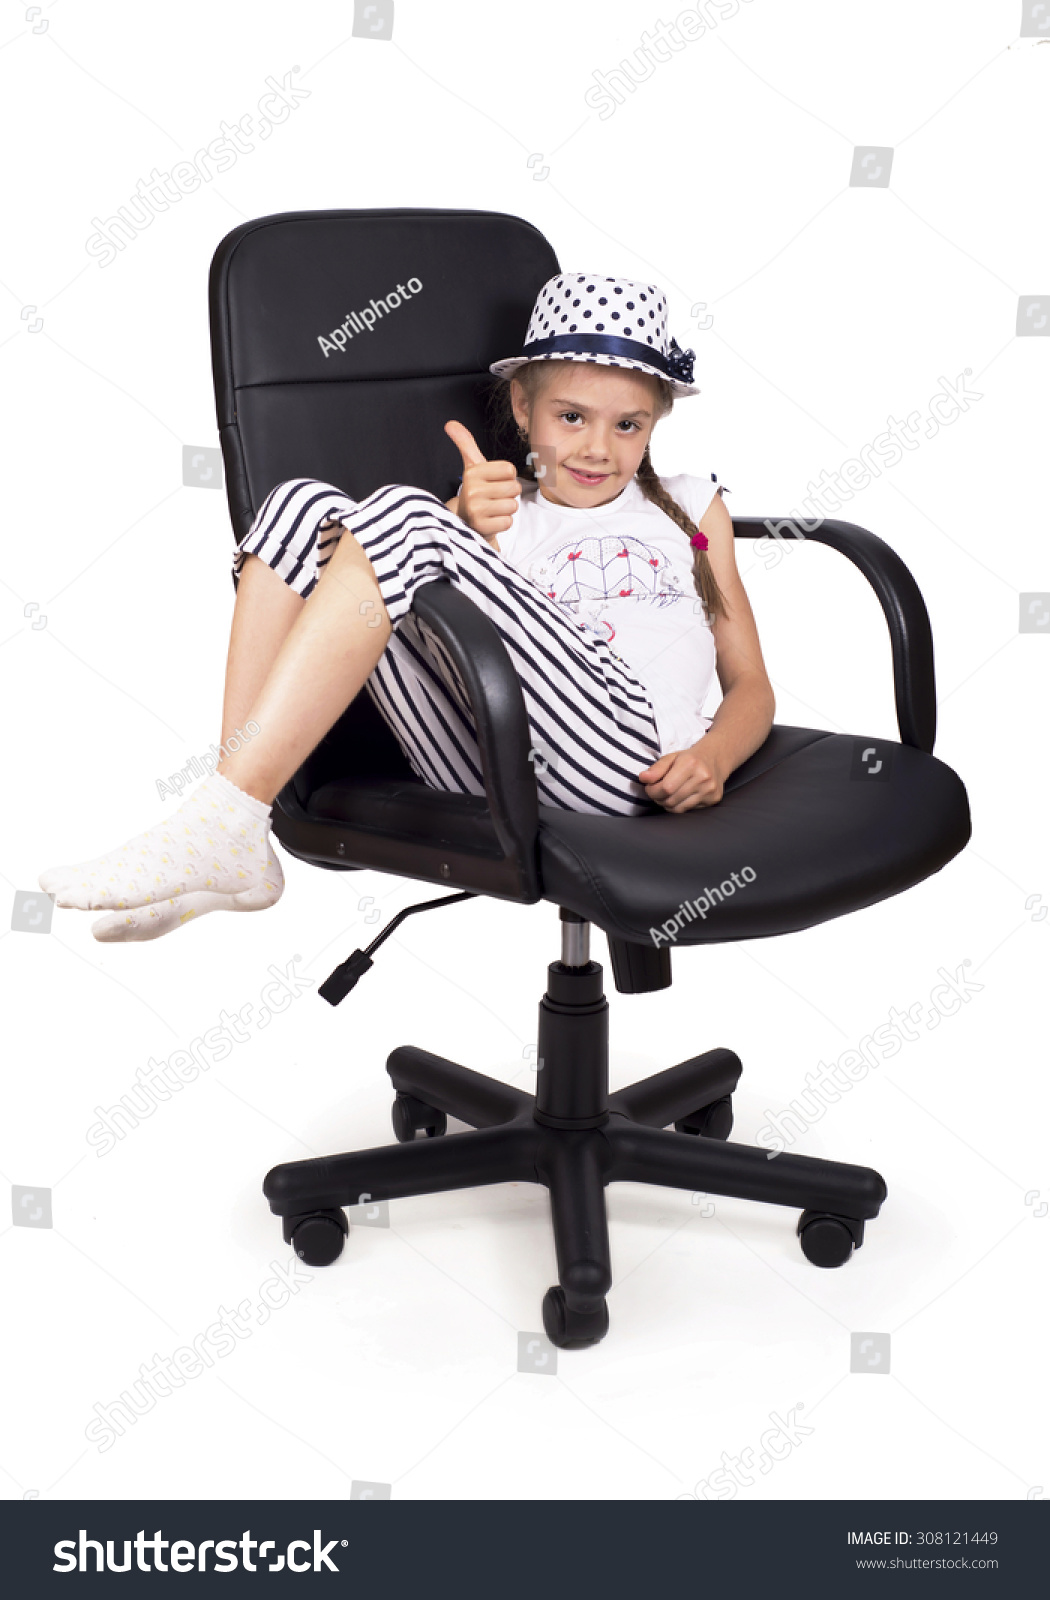 Girls Office Chair Girl In A Hat Raises Her Arms And Legs Up Sitting On A